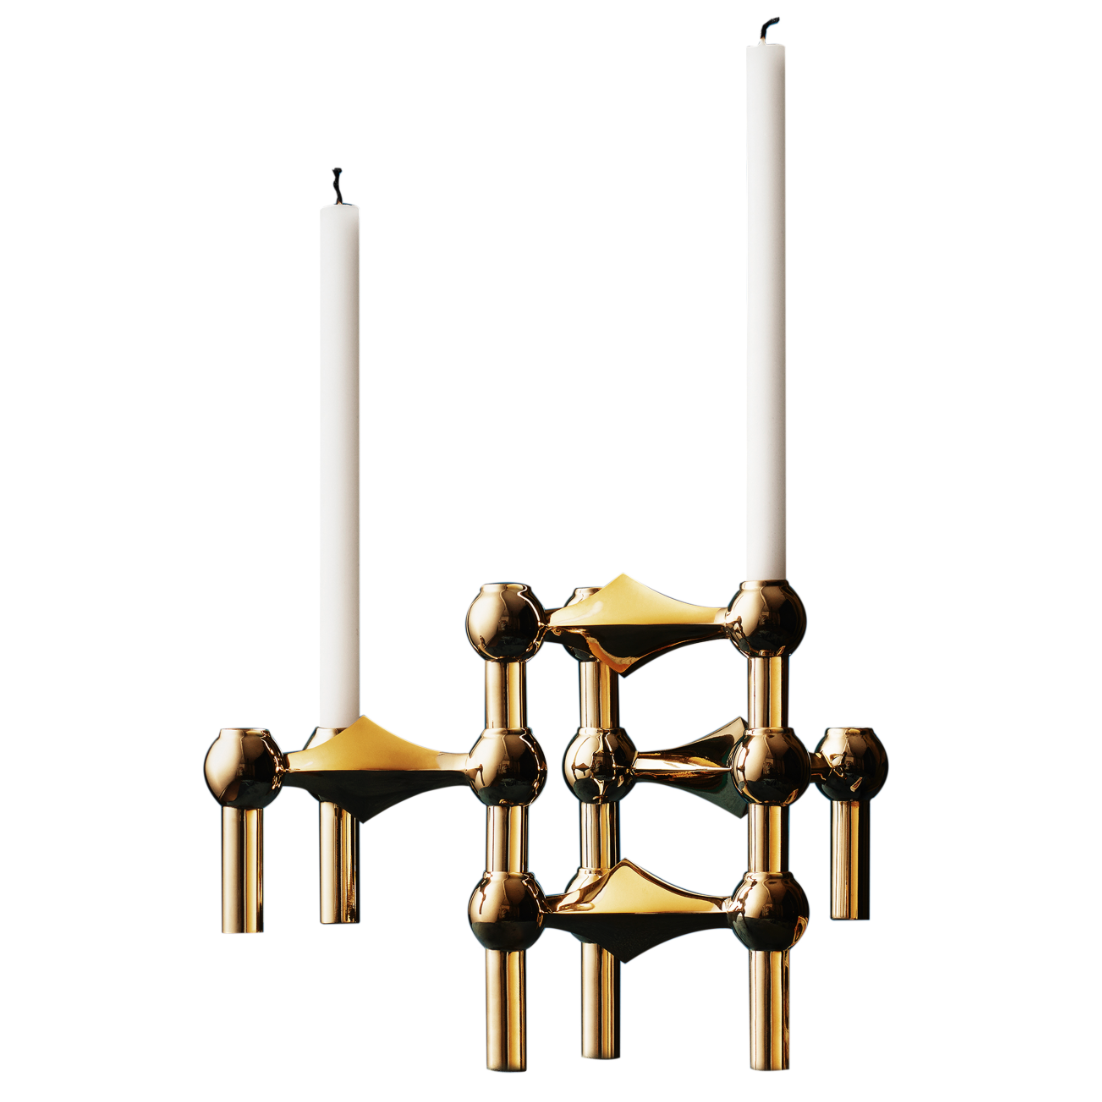 STOFF NAGEL CANDLE HOLDER BRASS